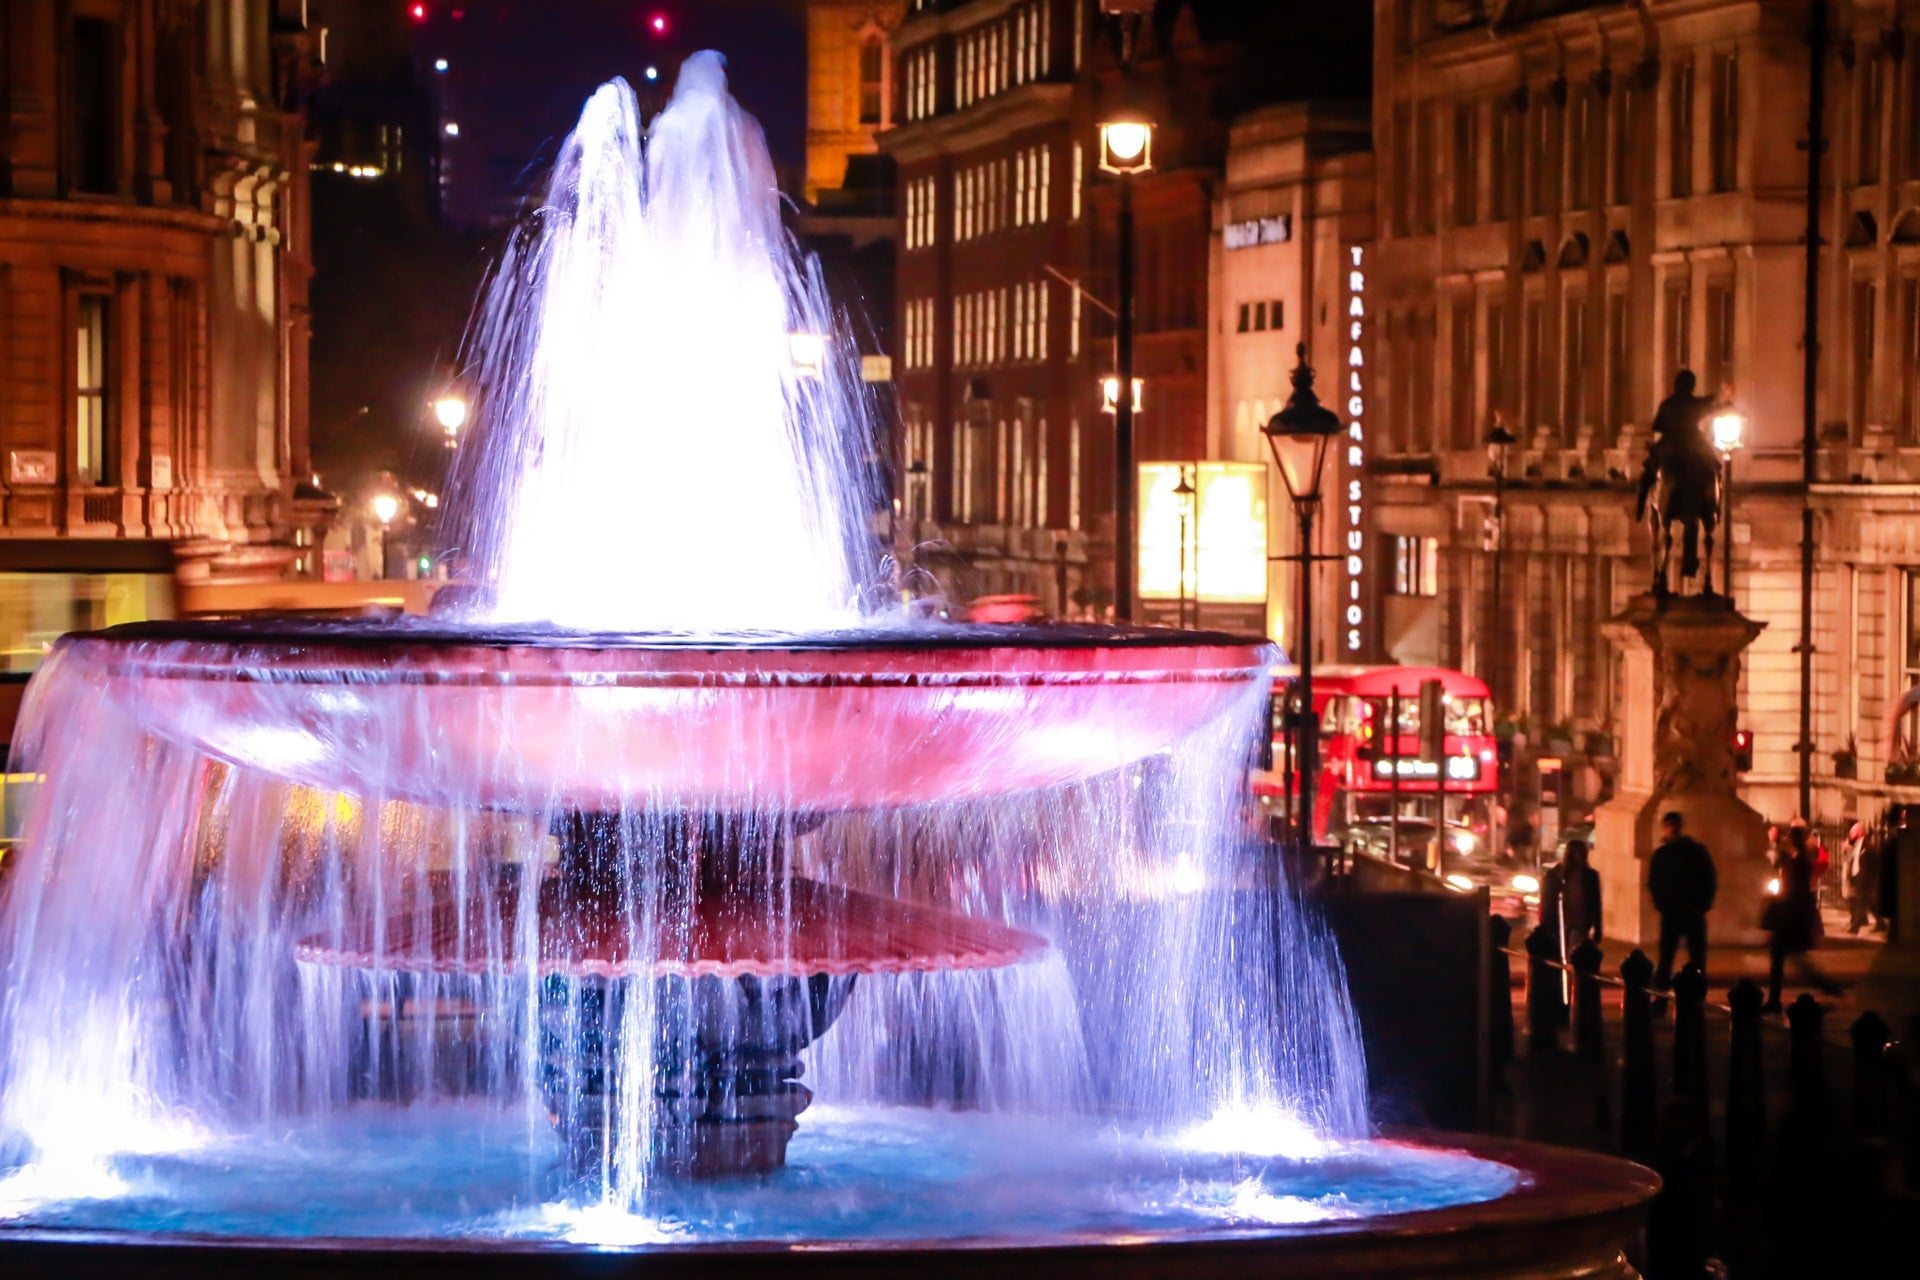 fountain-in-trafalgar-square-at-night-lit-up-by-lights